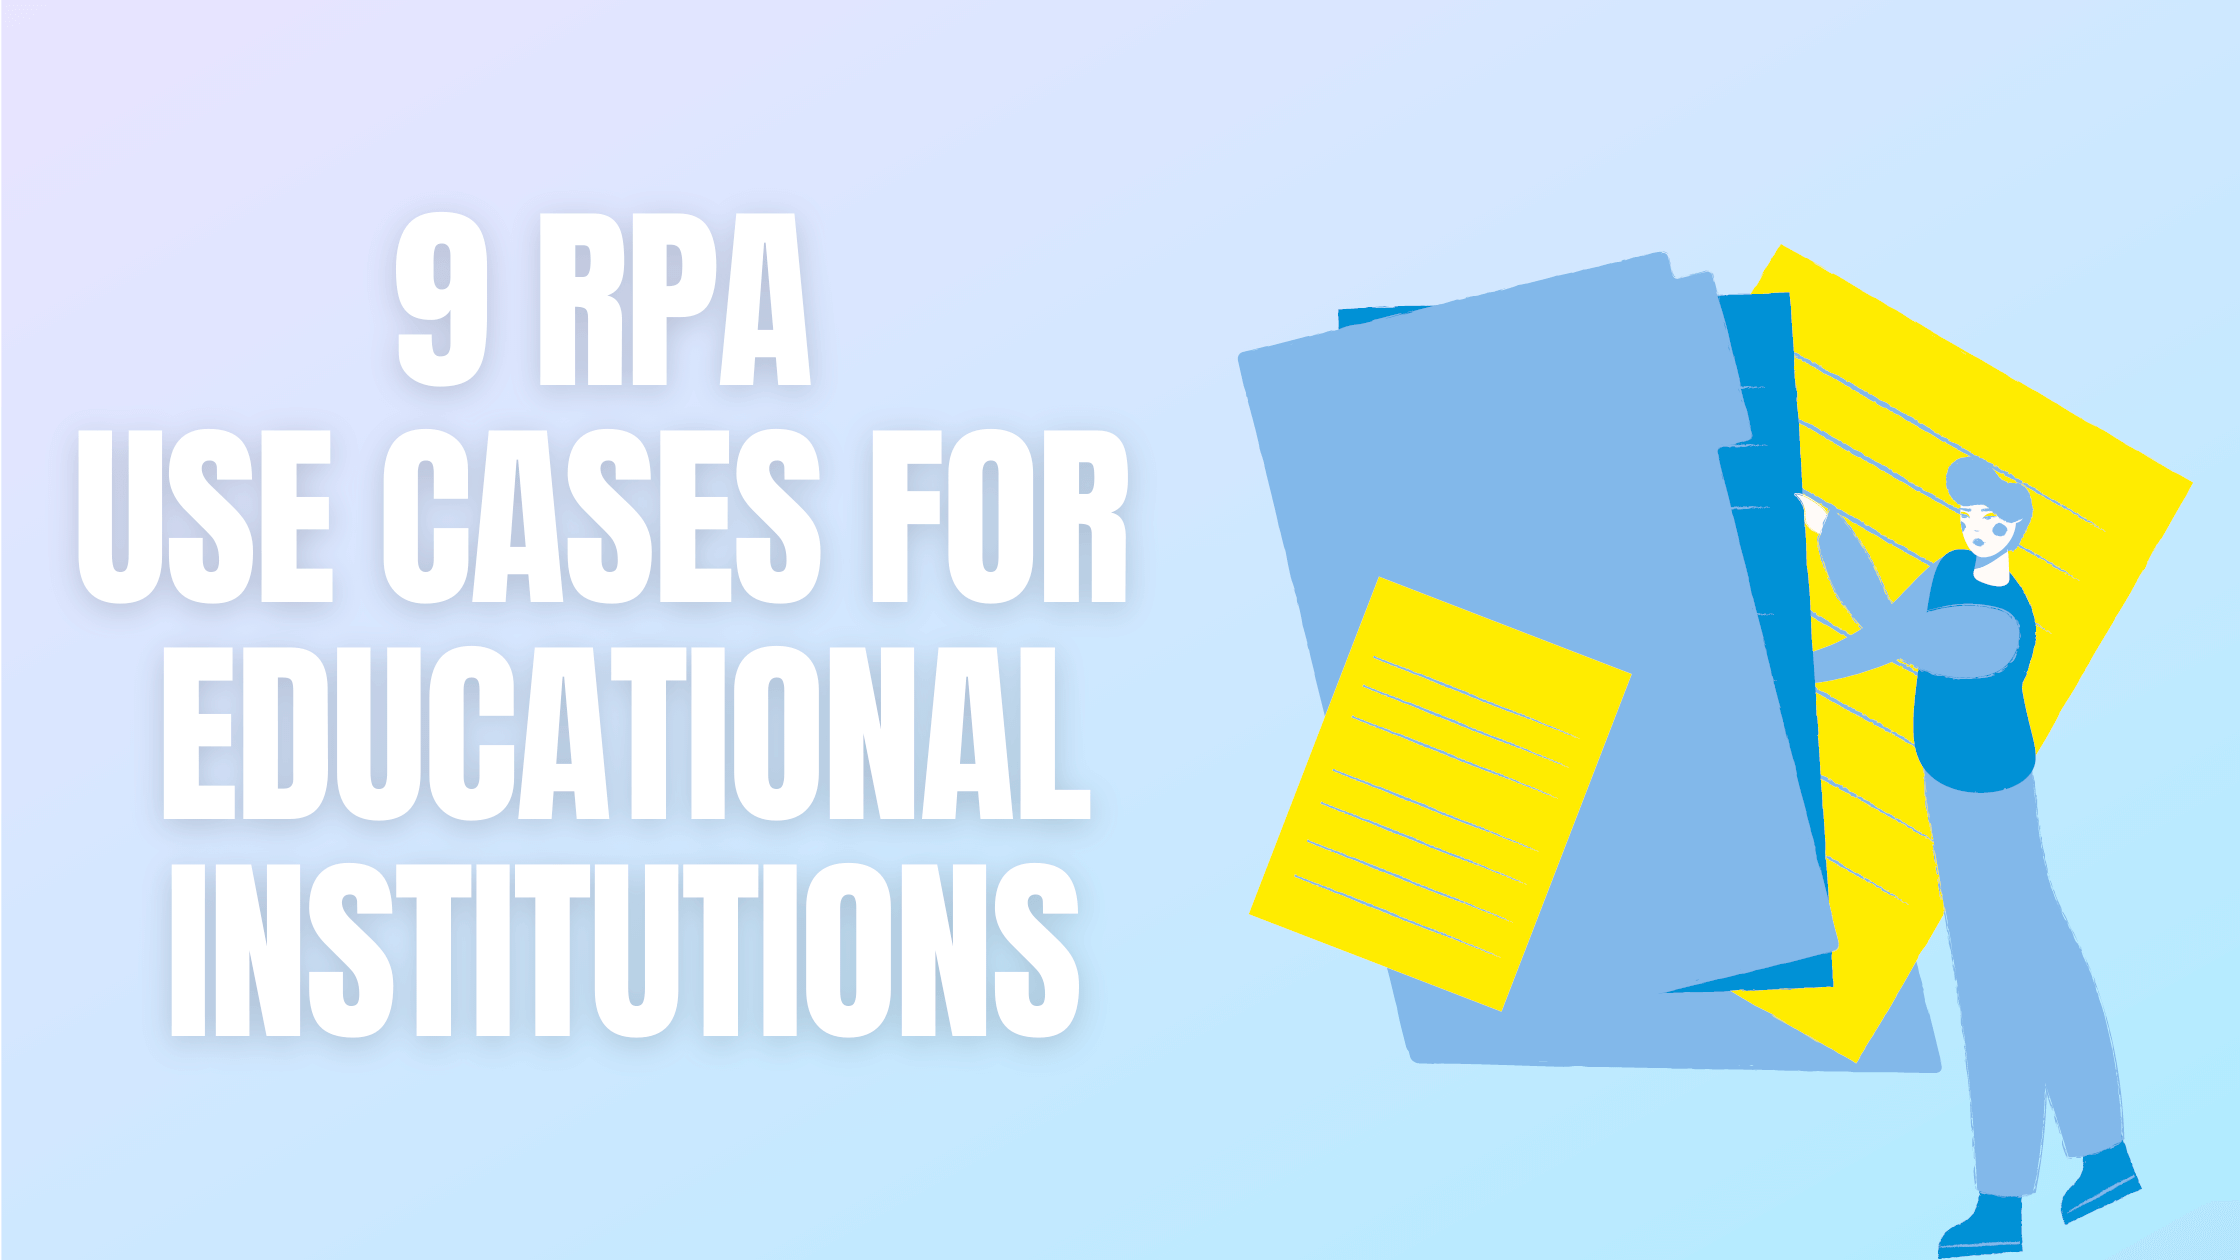 RPA use cases for educational institutes